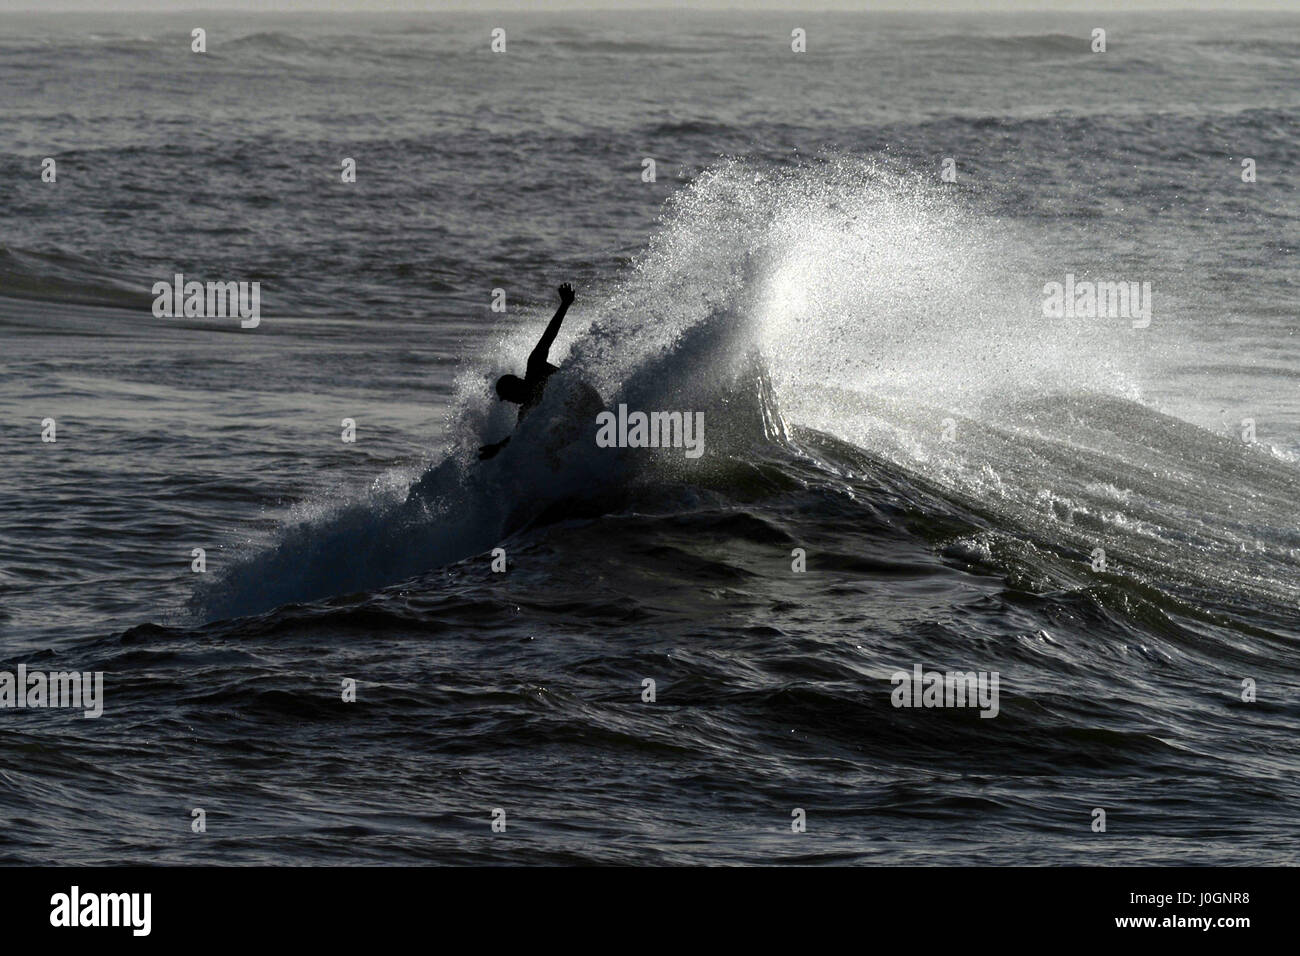 Surfer Lloyd Cole executes a tricky turn at the Sand Bar almost disappearing in a cloud of spray - Stock Image